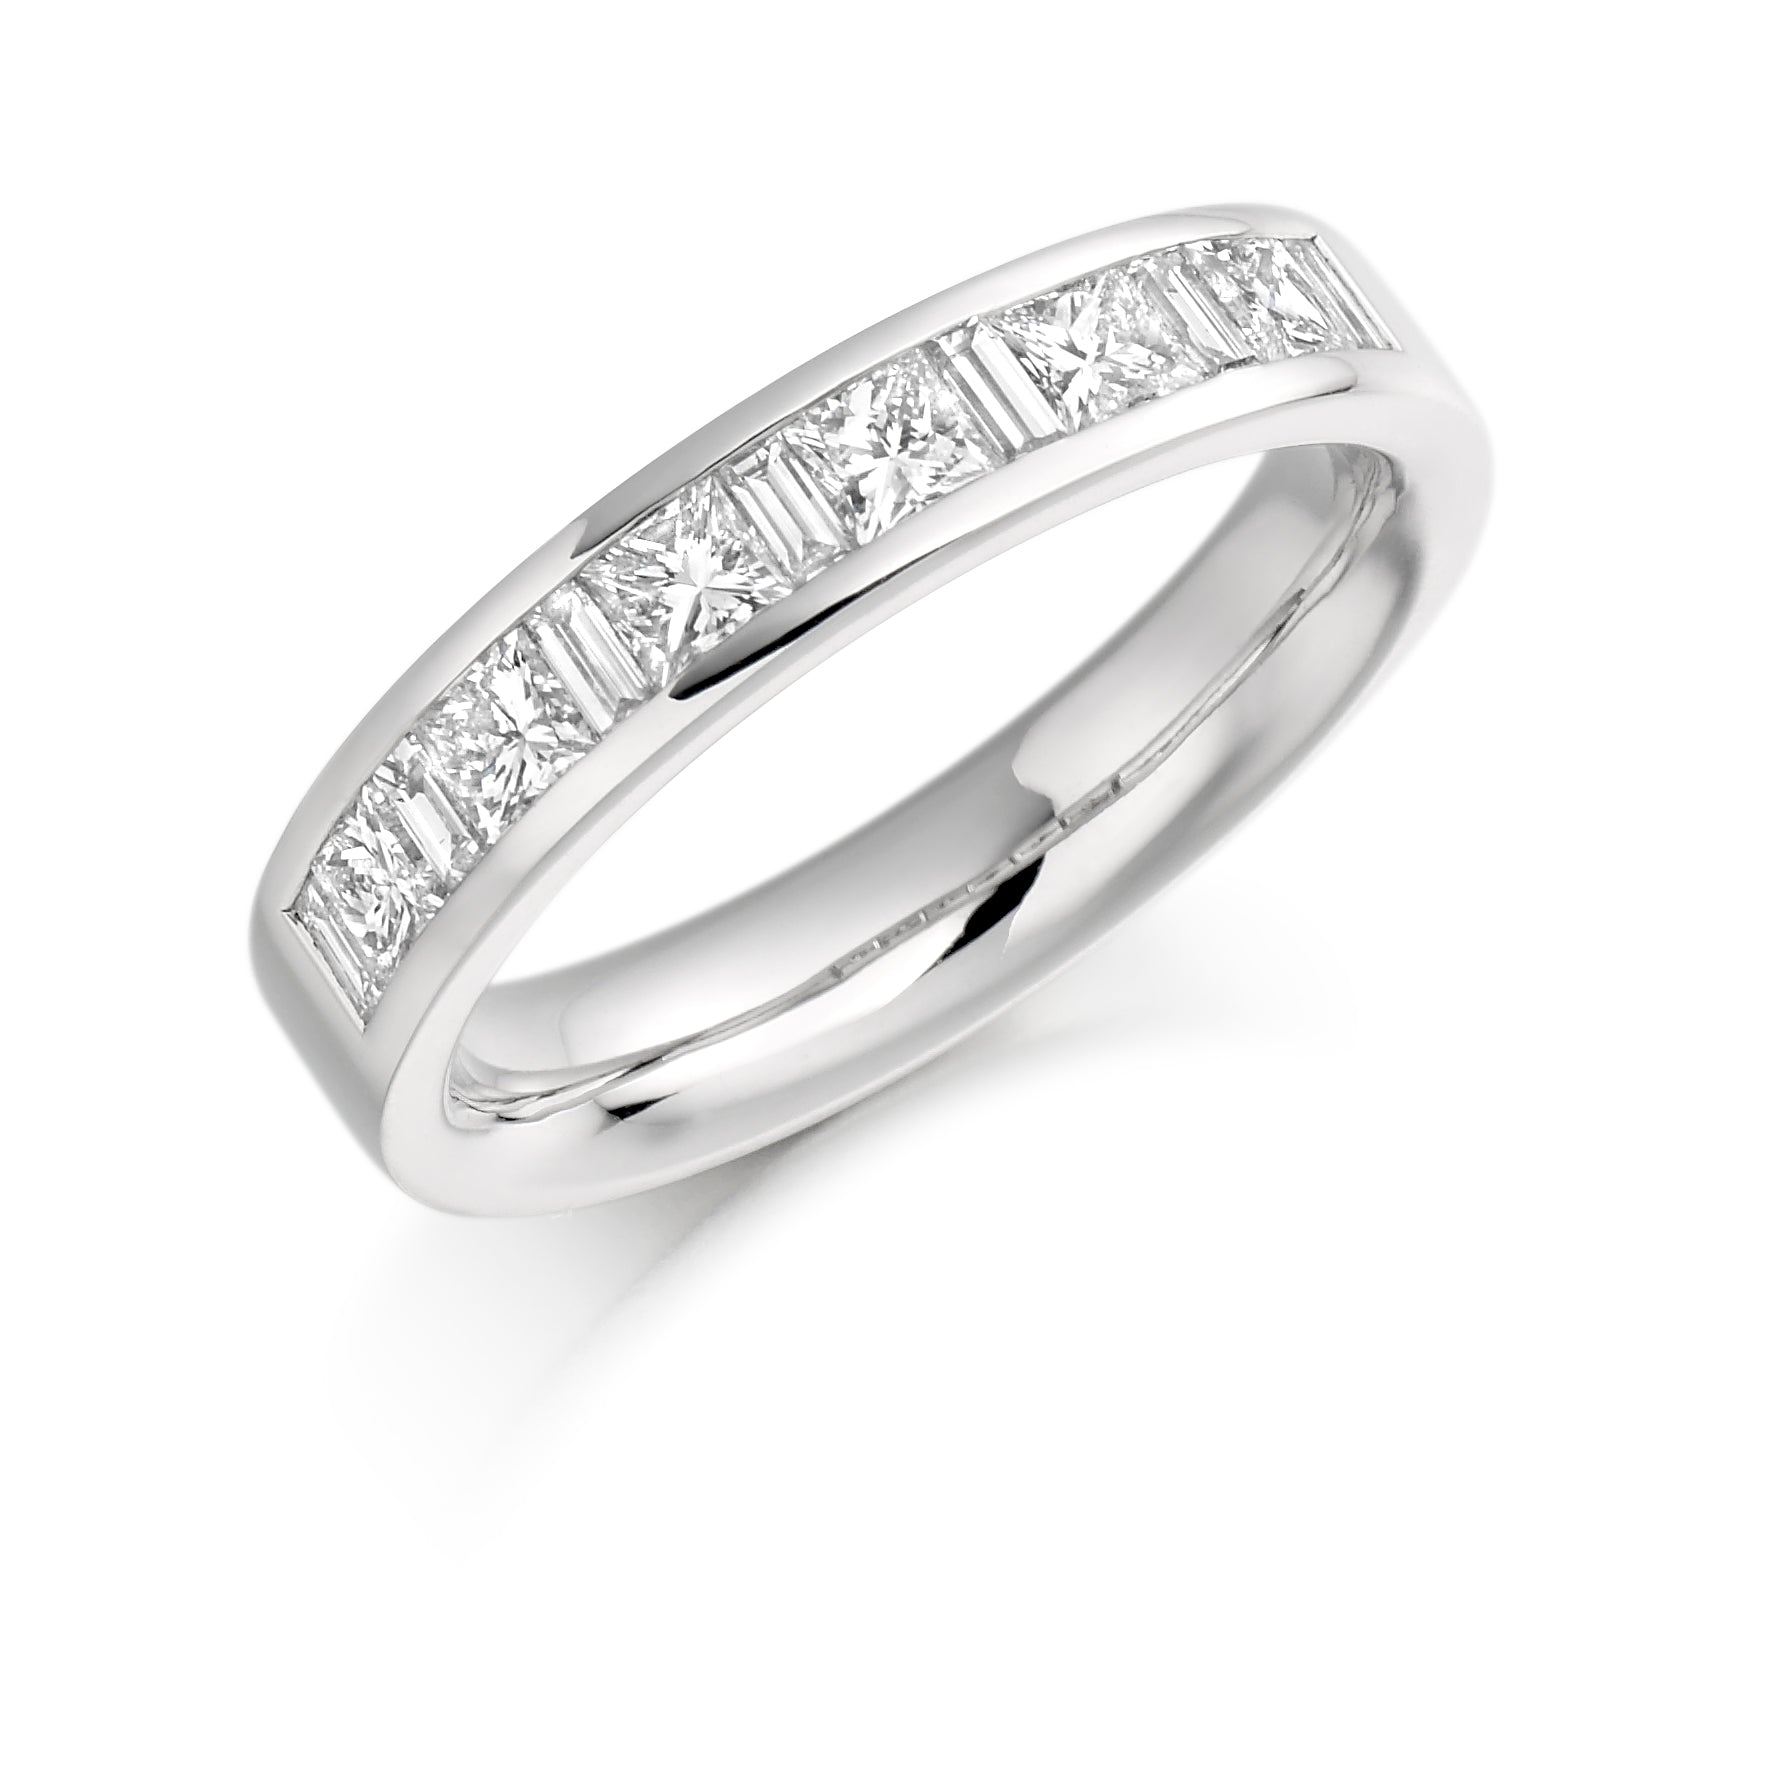 1ct Princess & Baguette Cut Wedding Ring - (Home Try-On)